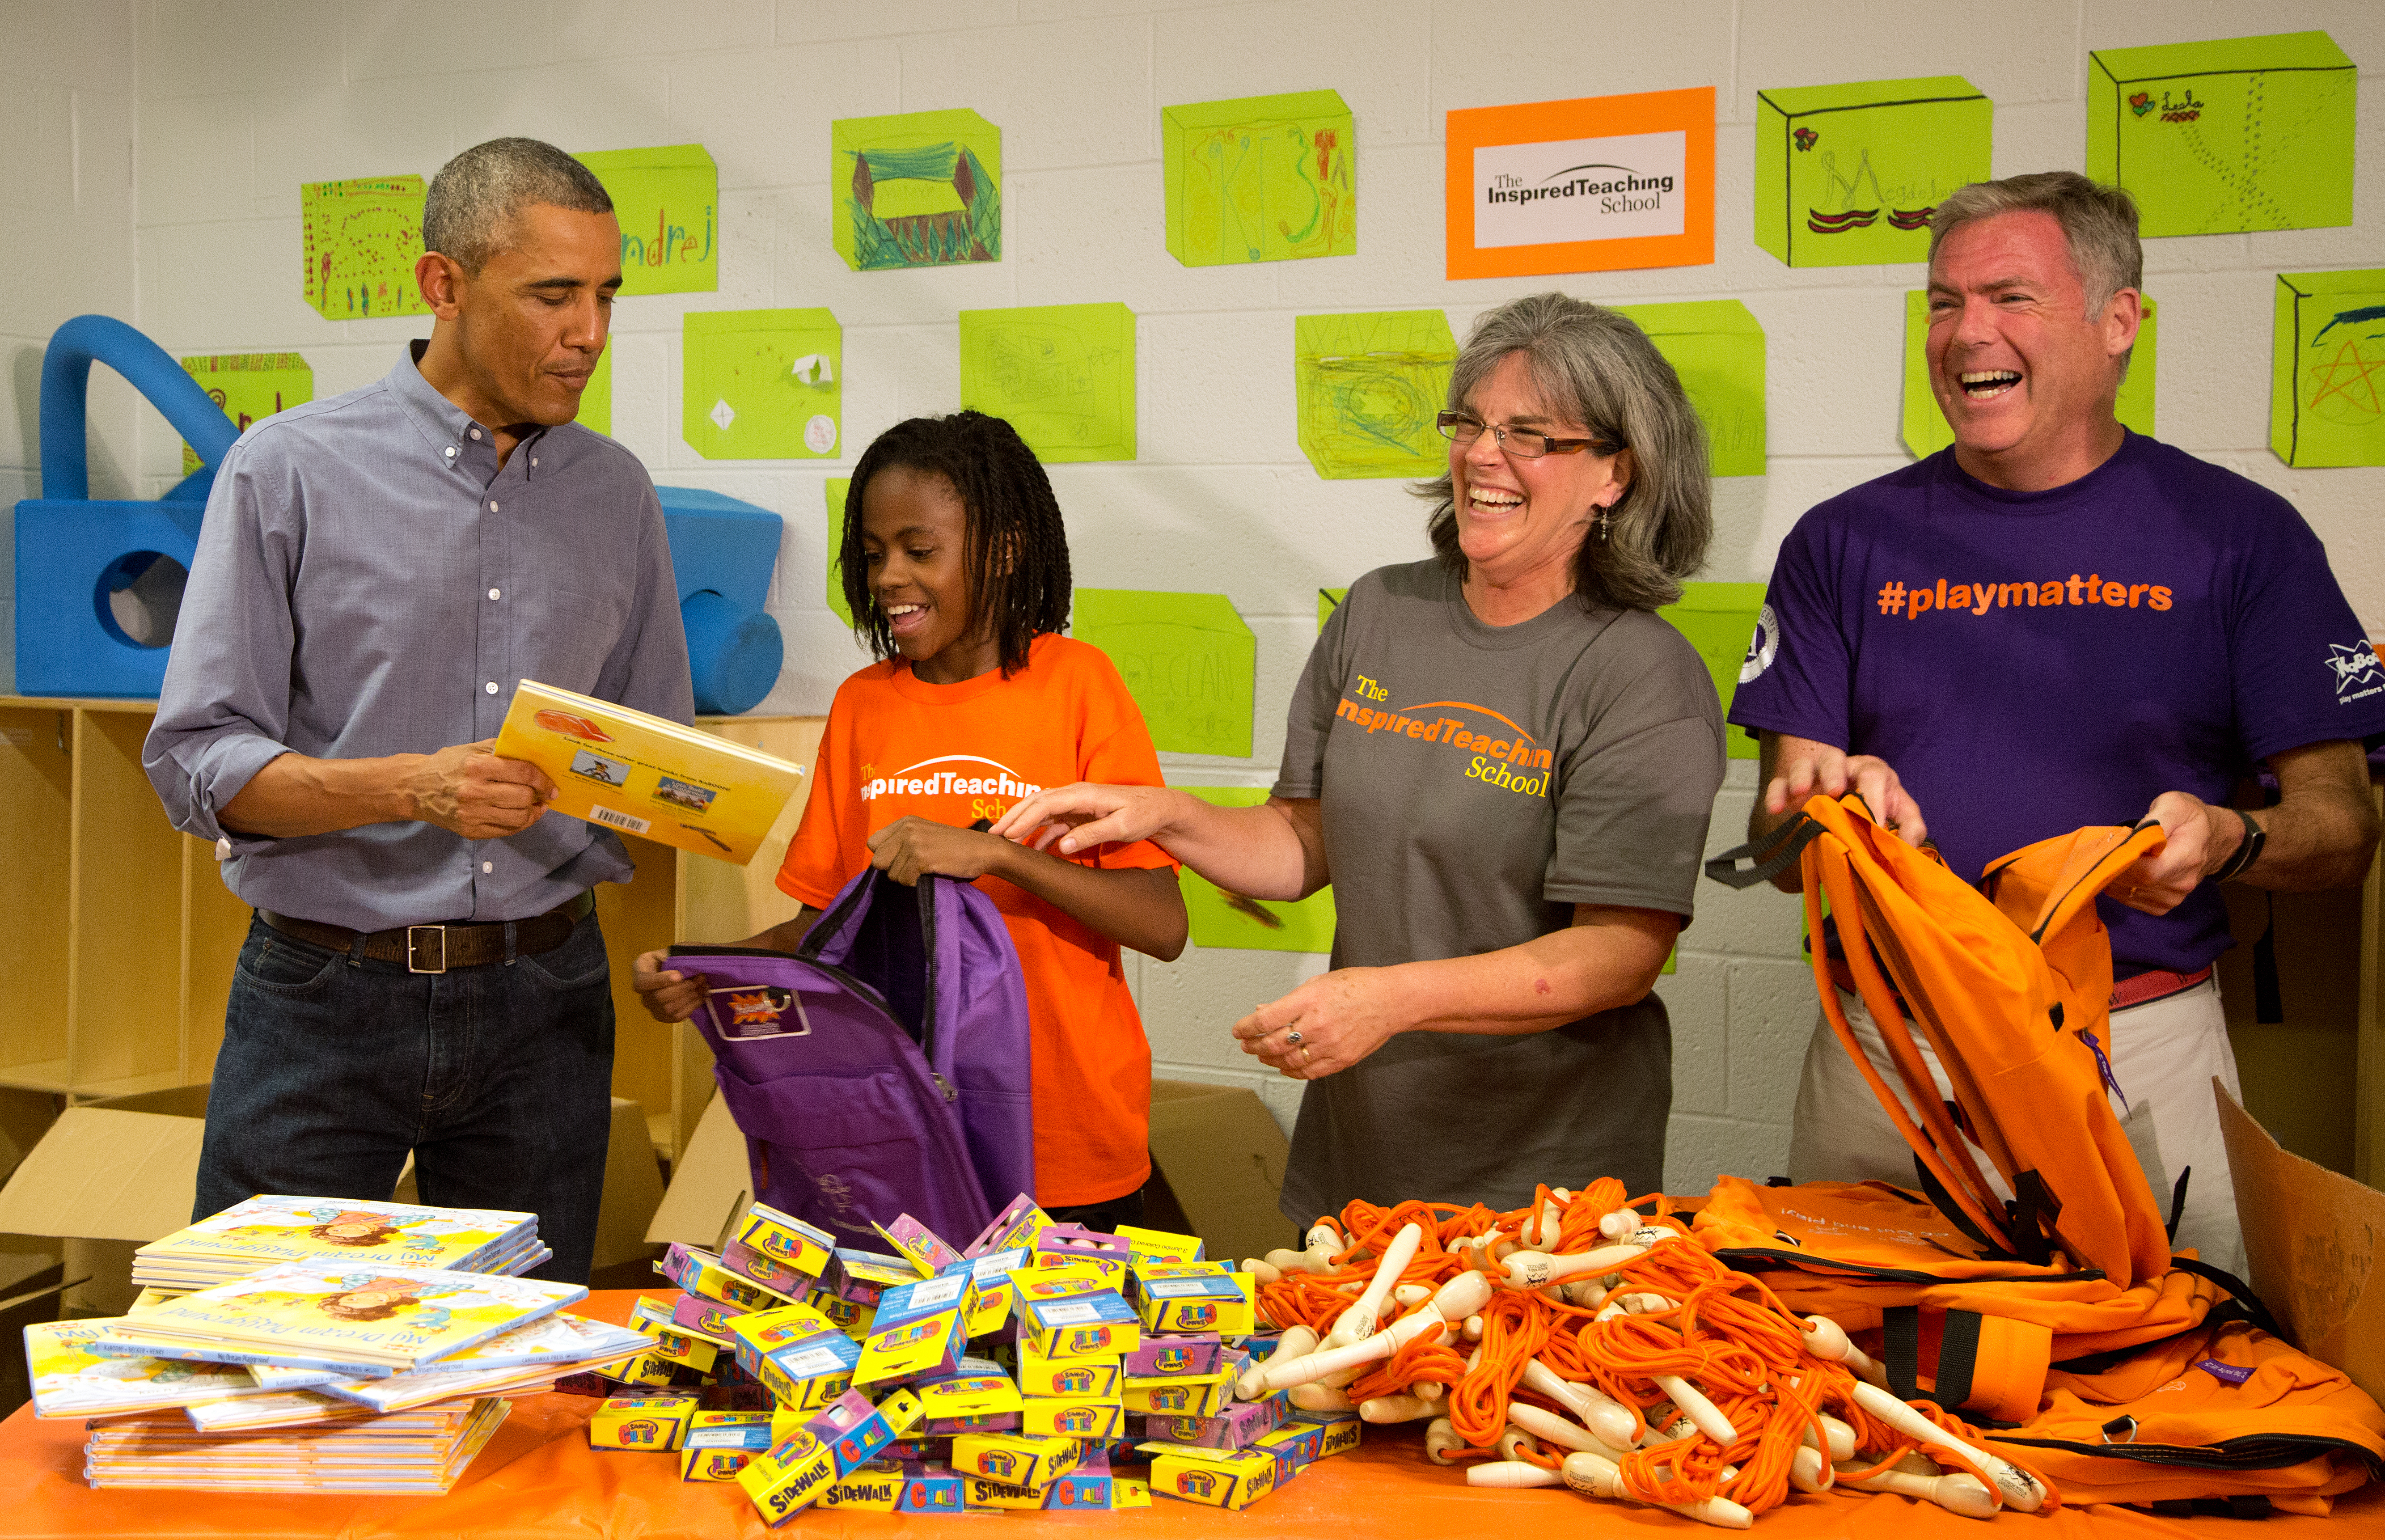 President Barack Obama and volunteers take part in a service project at the Inspired Teaching School in Washington, D.C. on September 11, 2014.